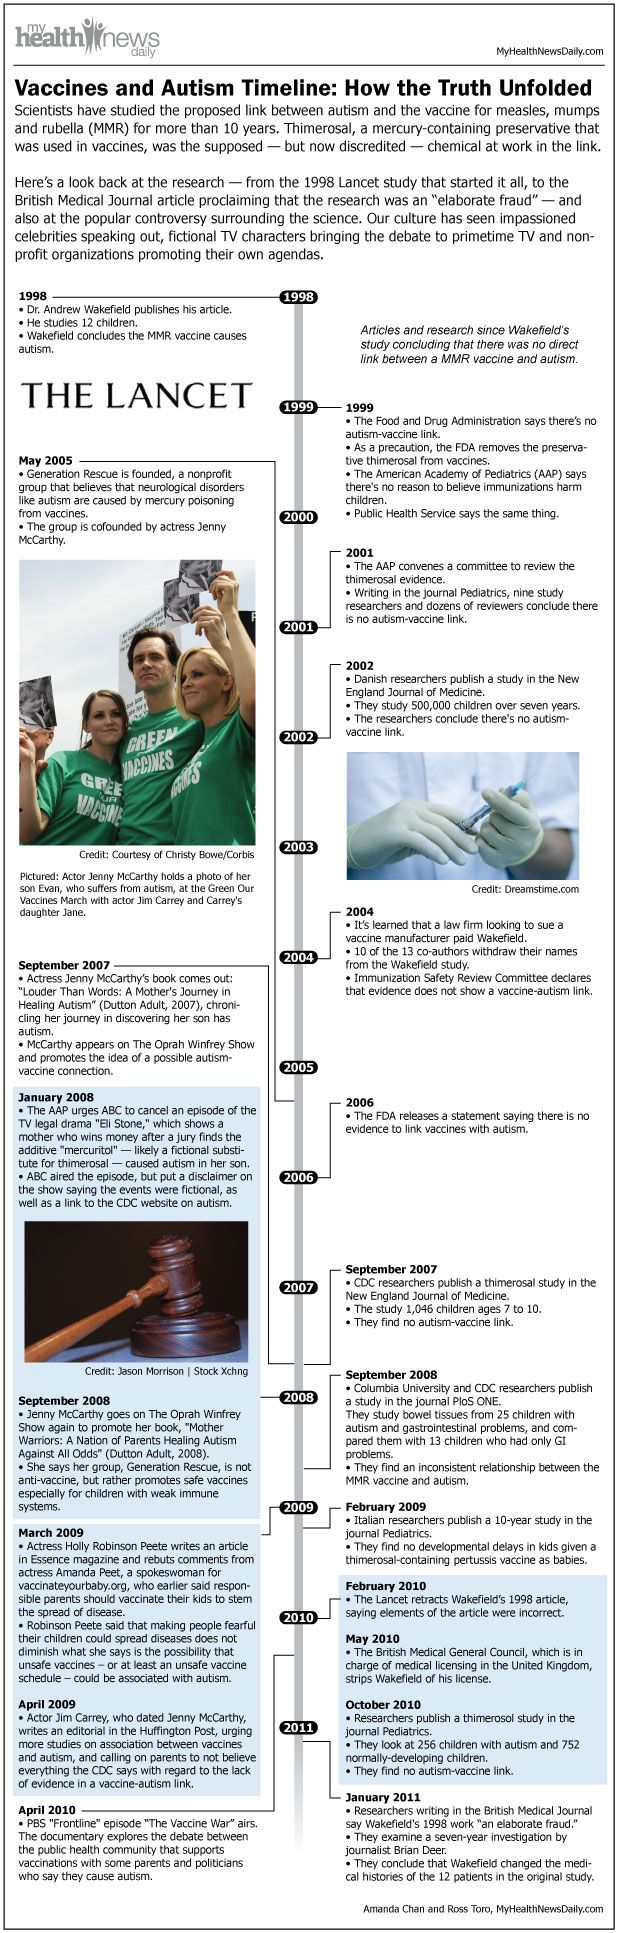 Vaccines and Autism Timeline: The Truth Unfolds. Lots to think about/research.